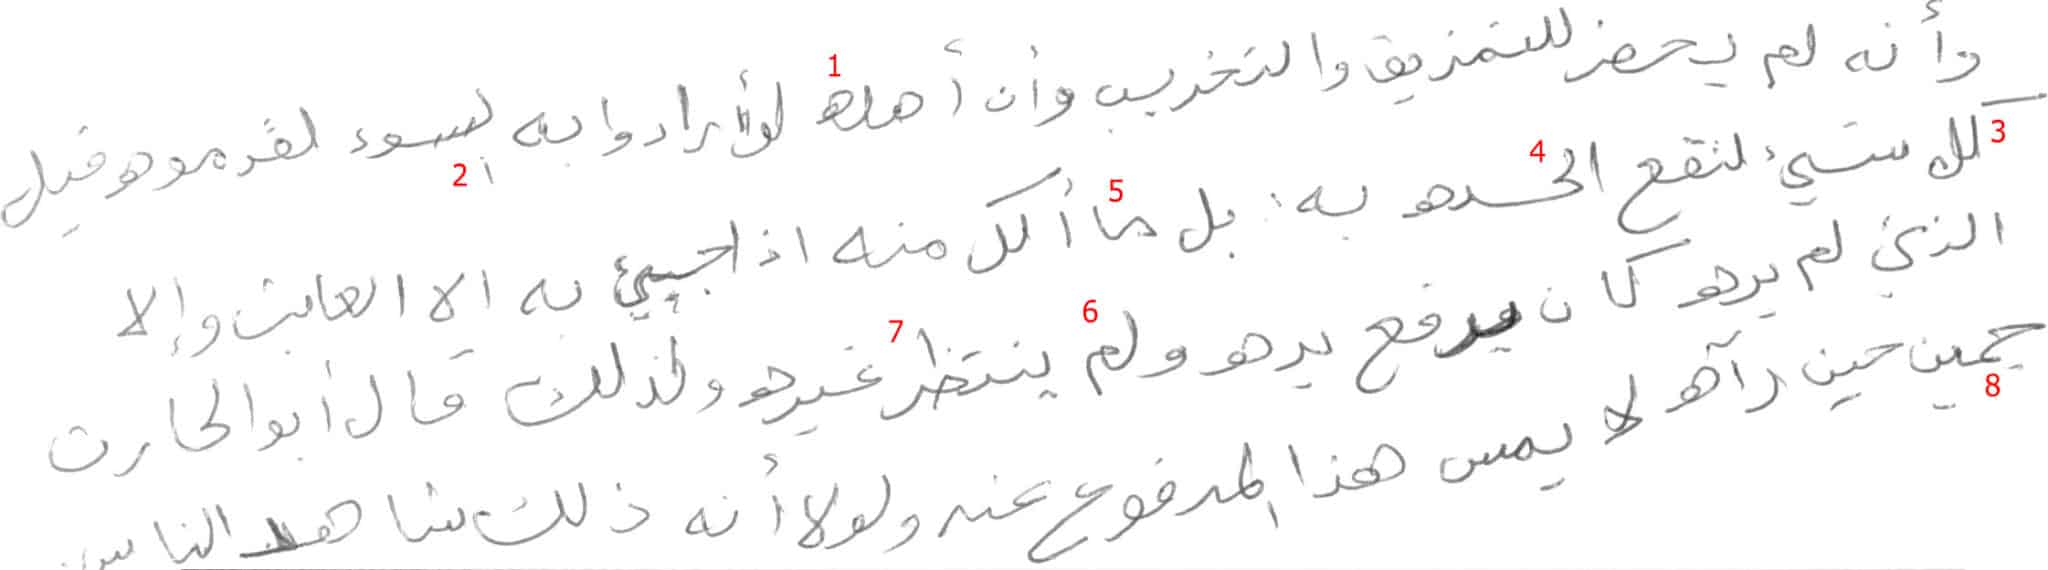 arabic-handwriting-01